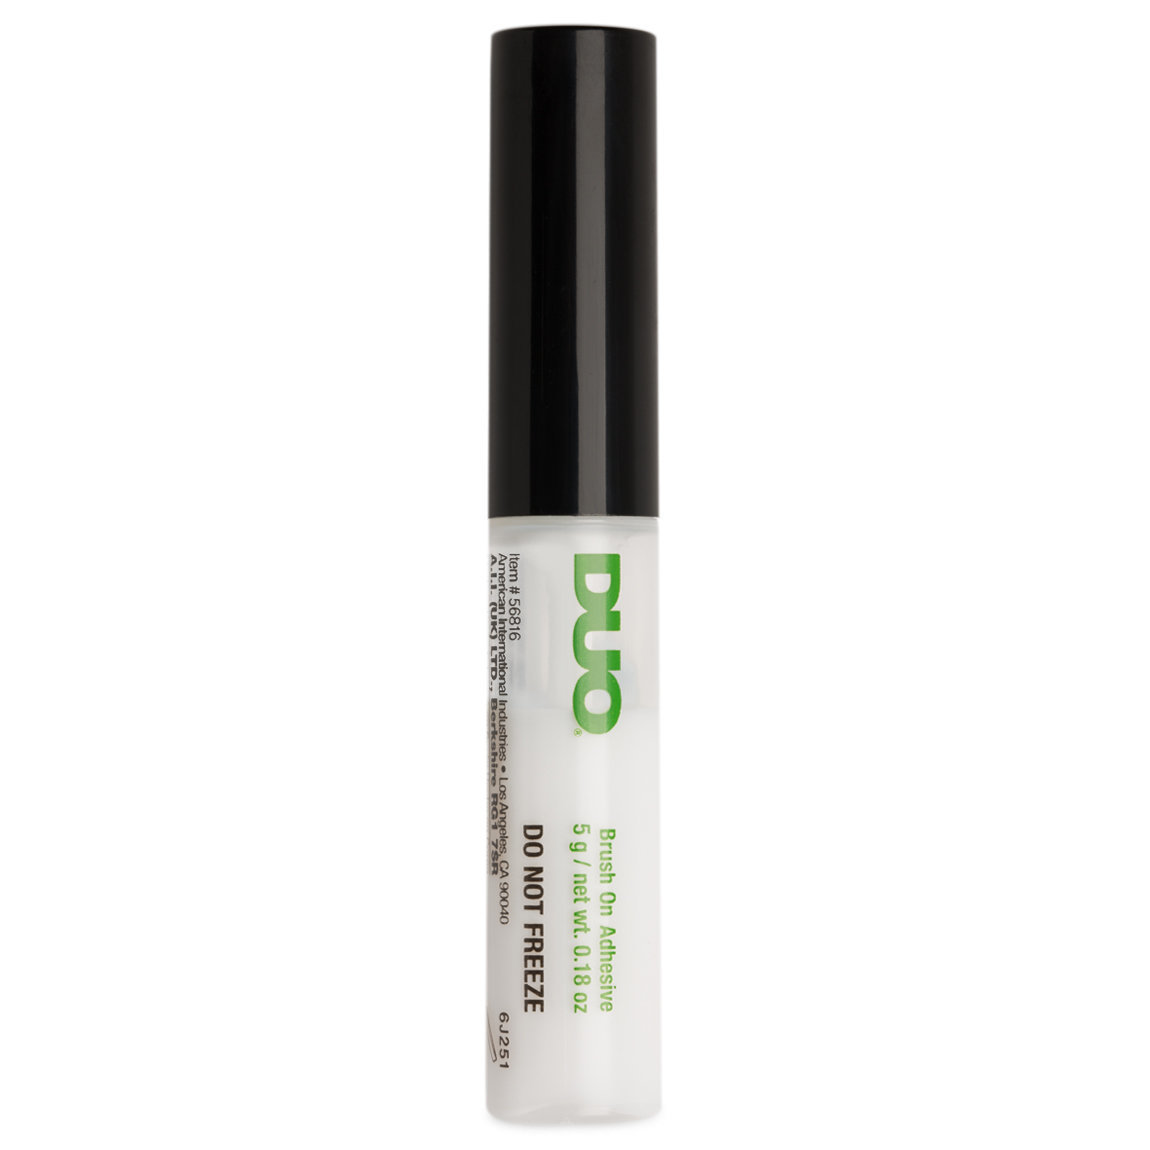 c198cb760bb DUO Brush-on Adhesive With Vitamins Clear product smear.